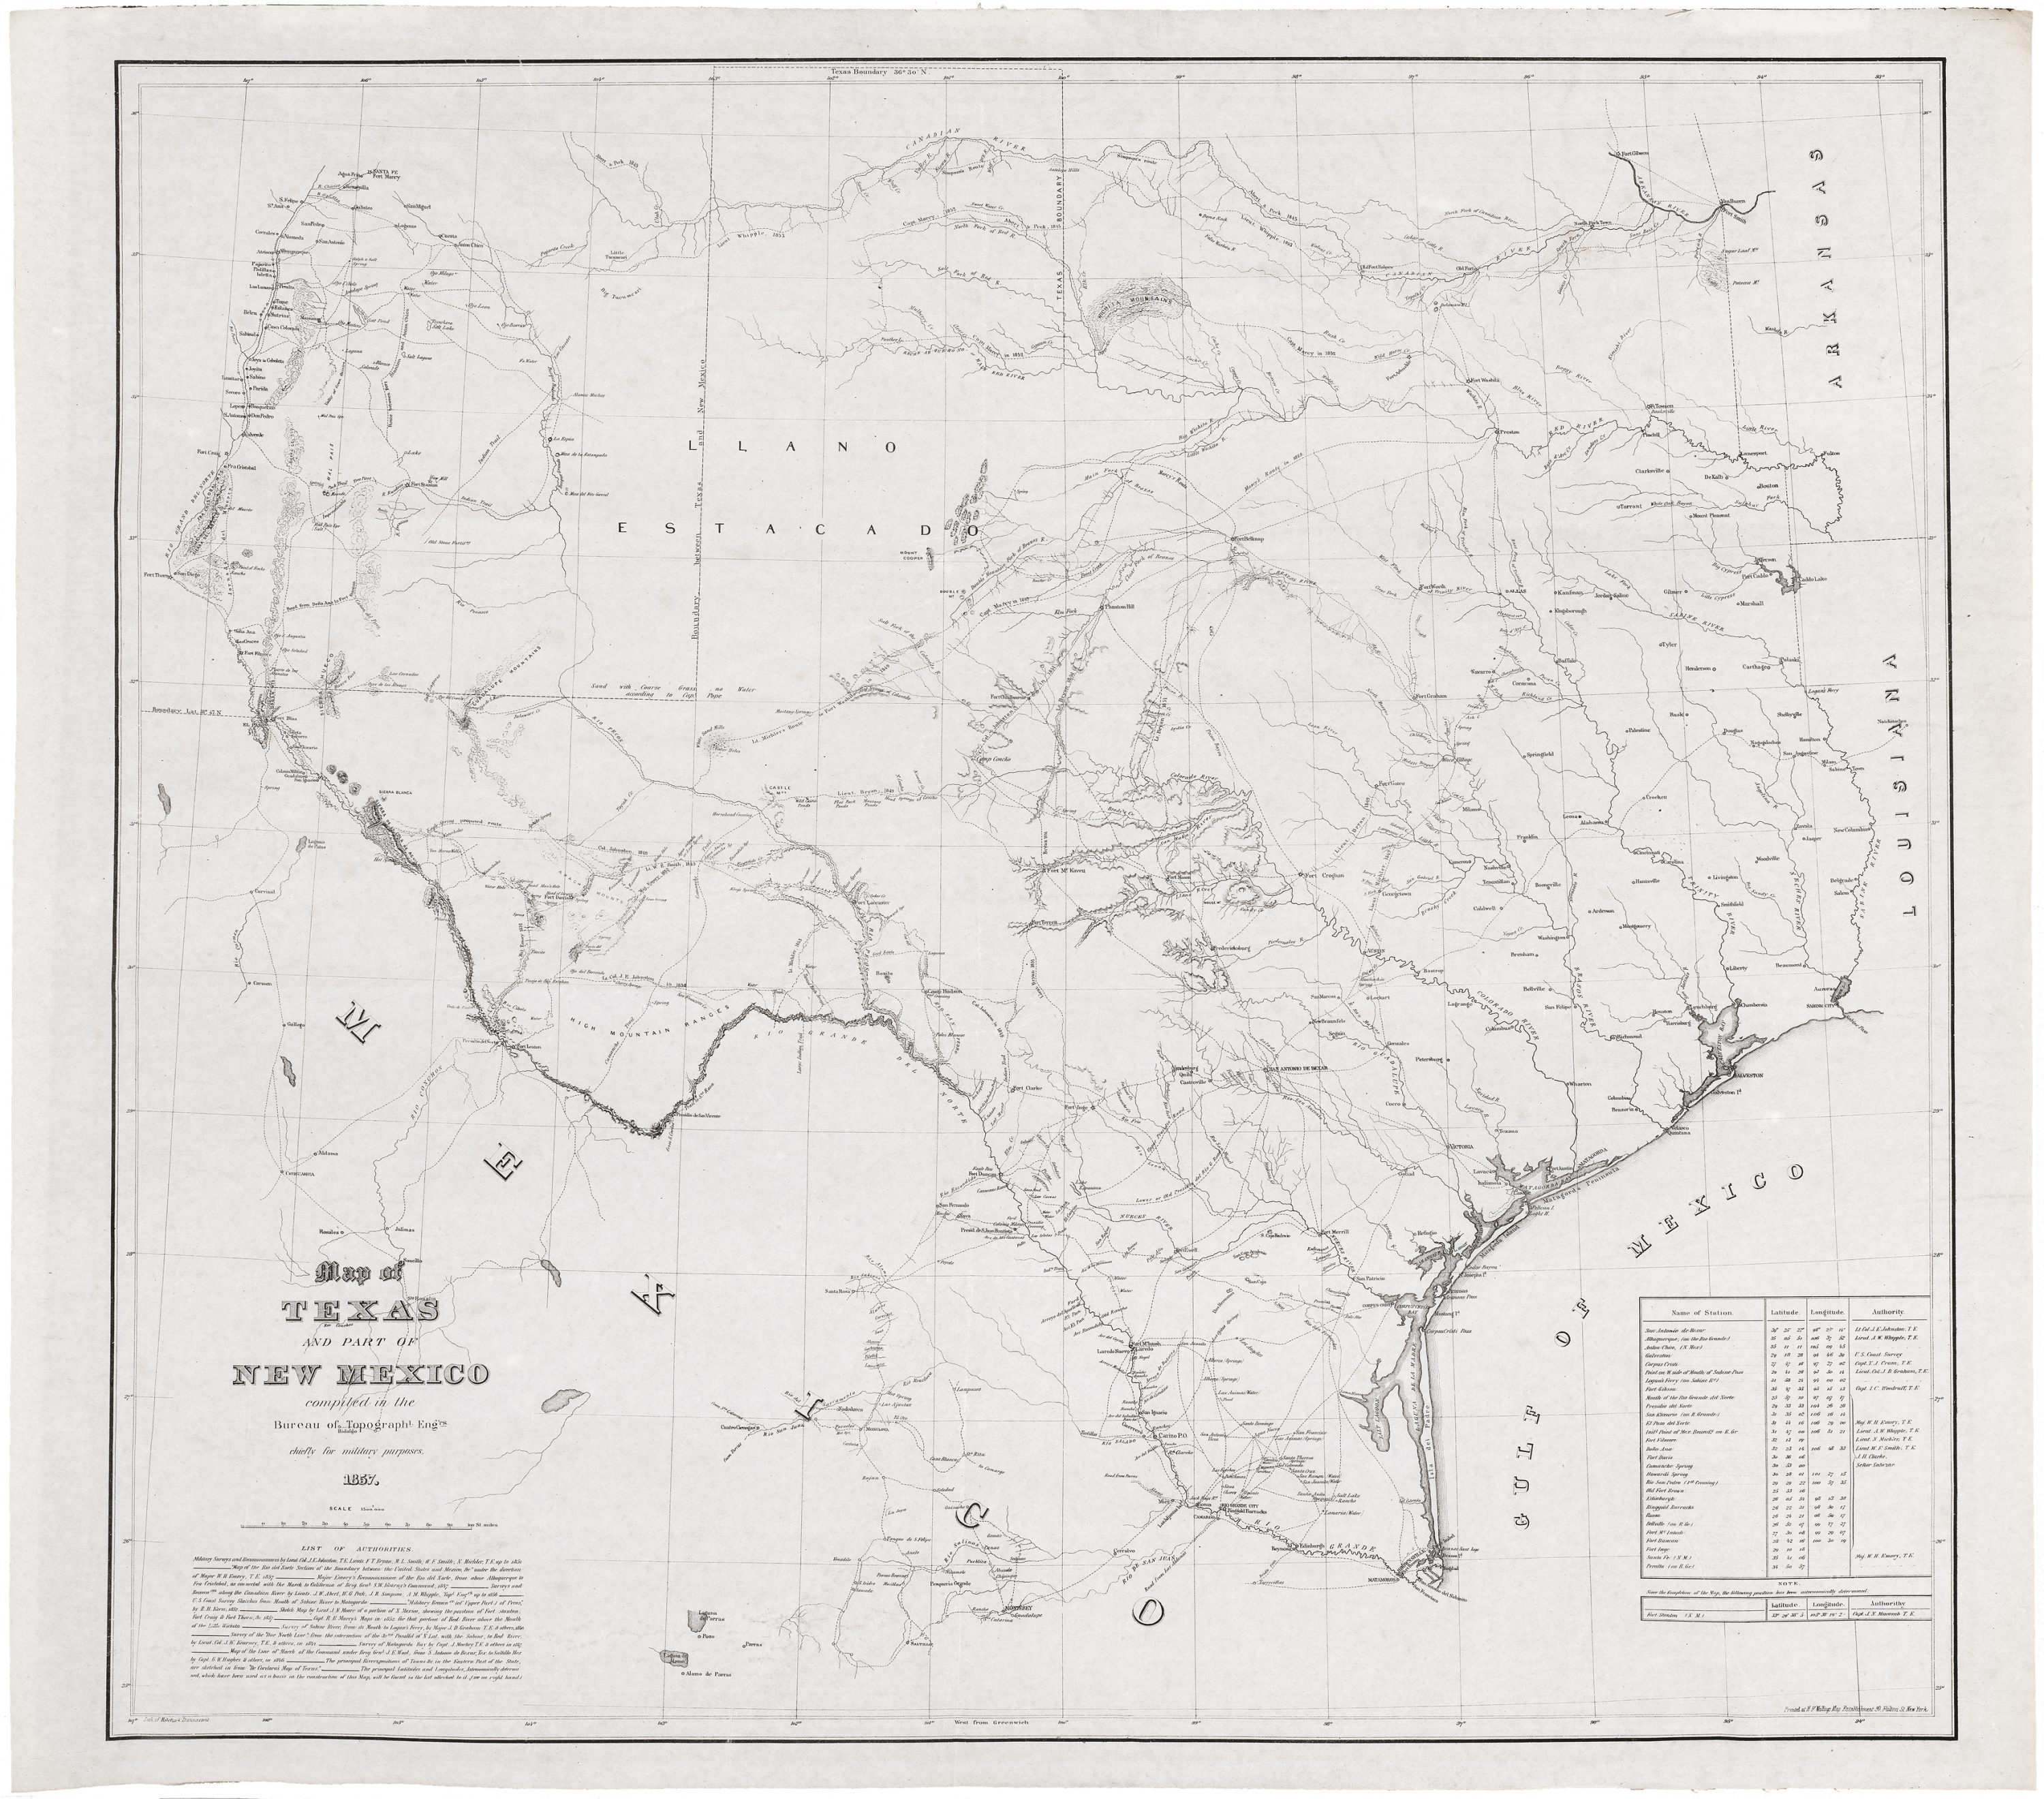 Map Of Texas And New Mexico One of the best illustrations of ante bellum Texas and New Mexico